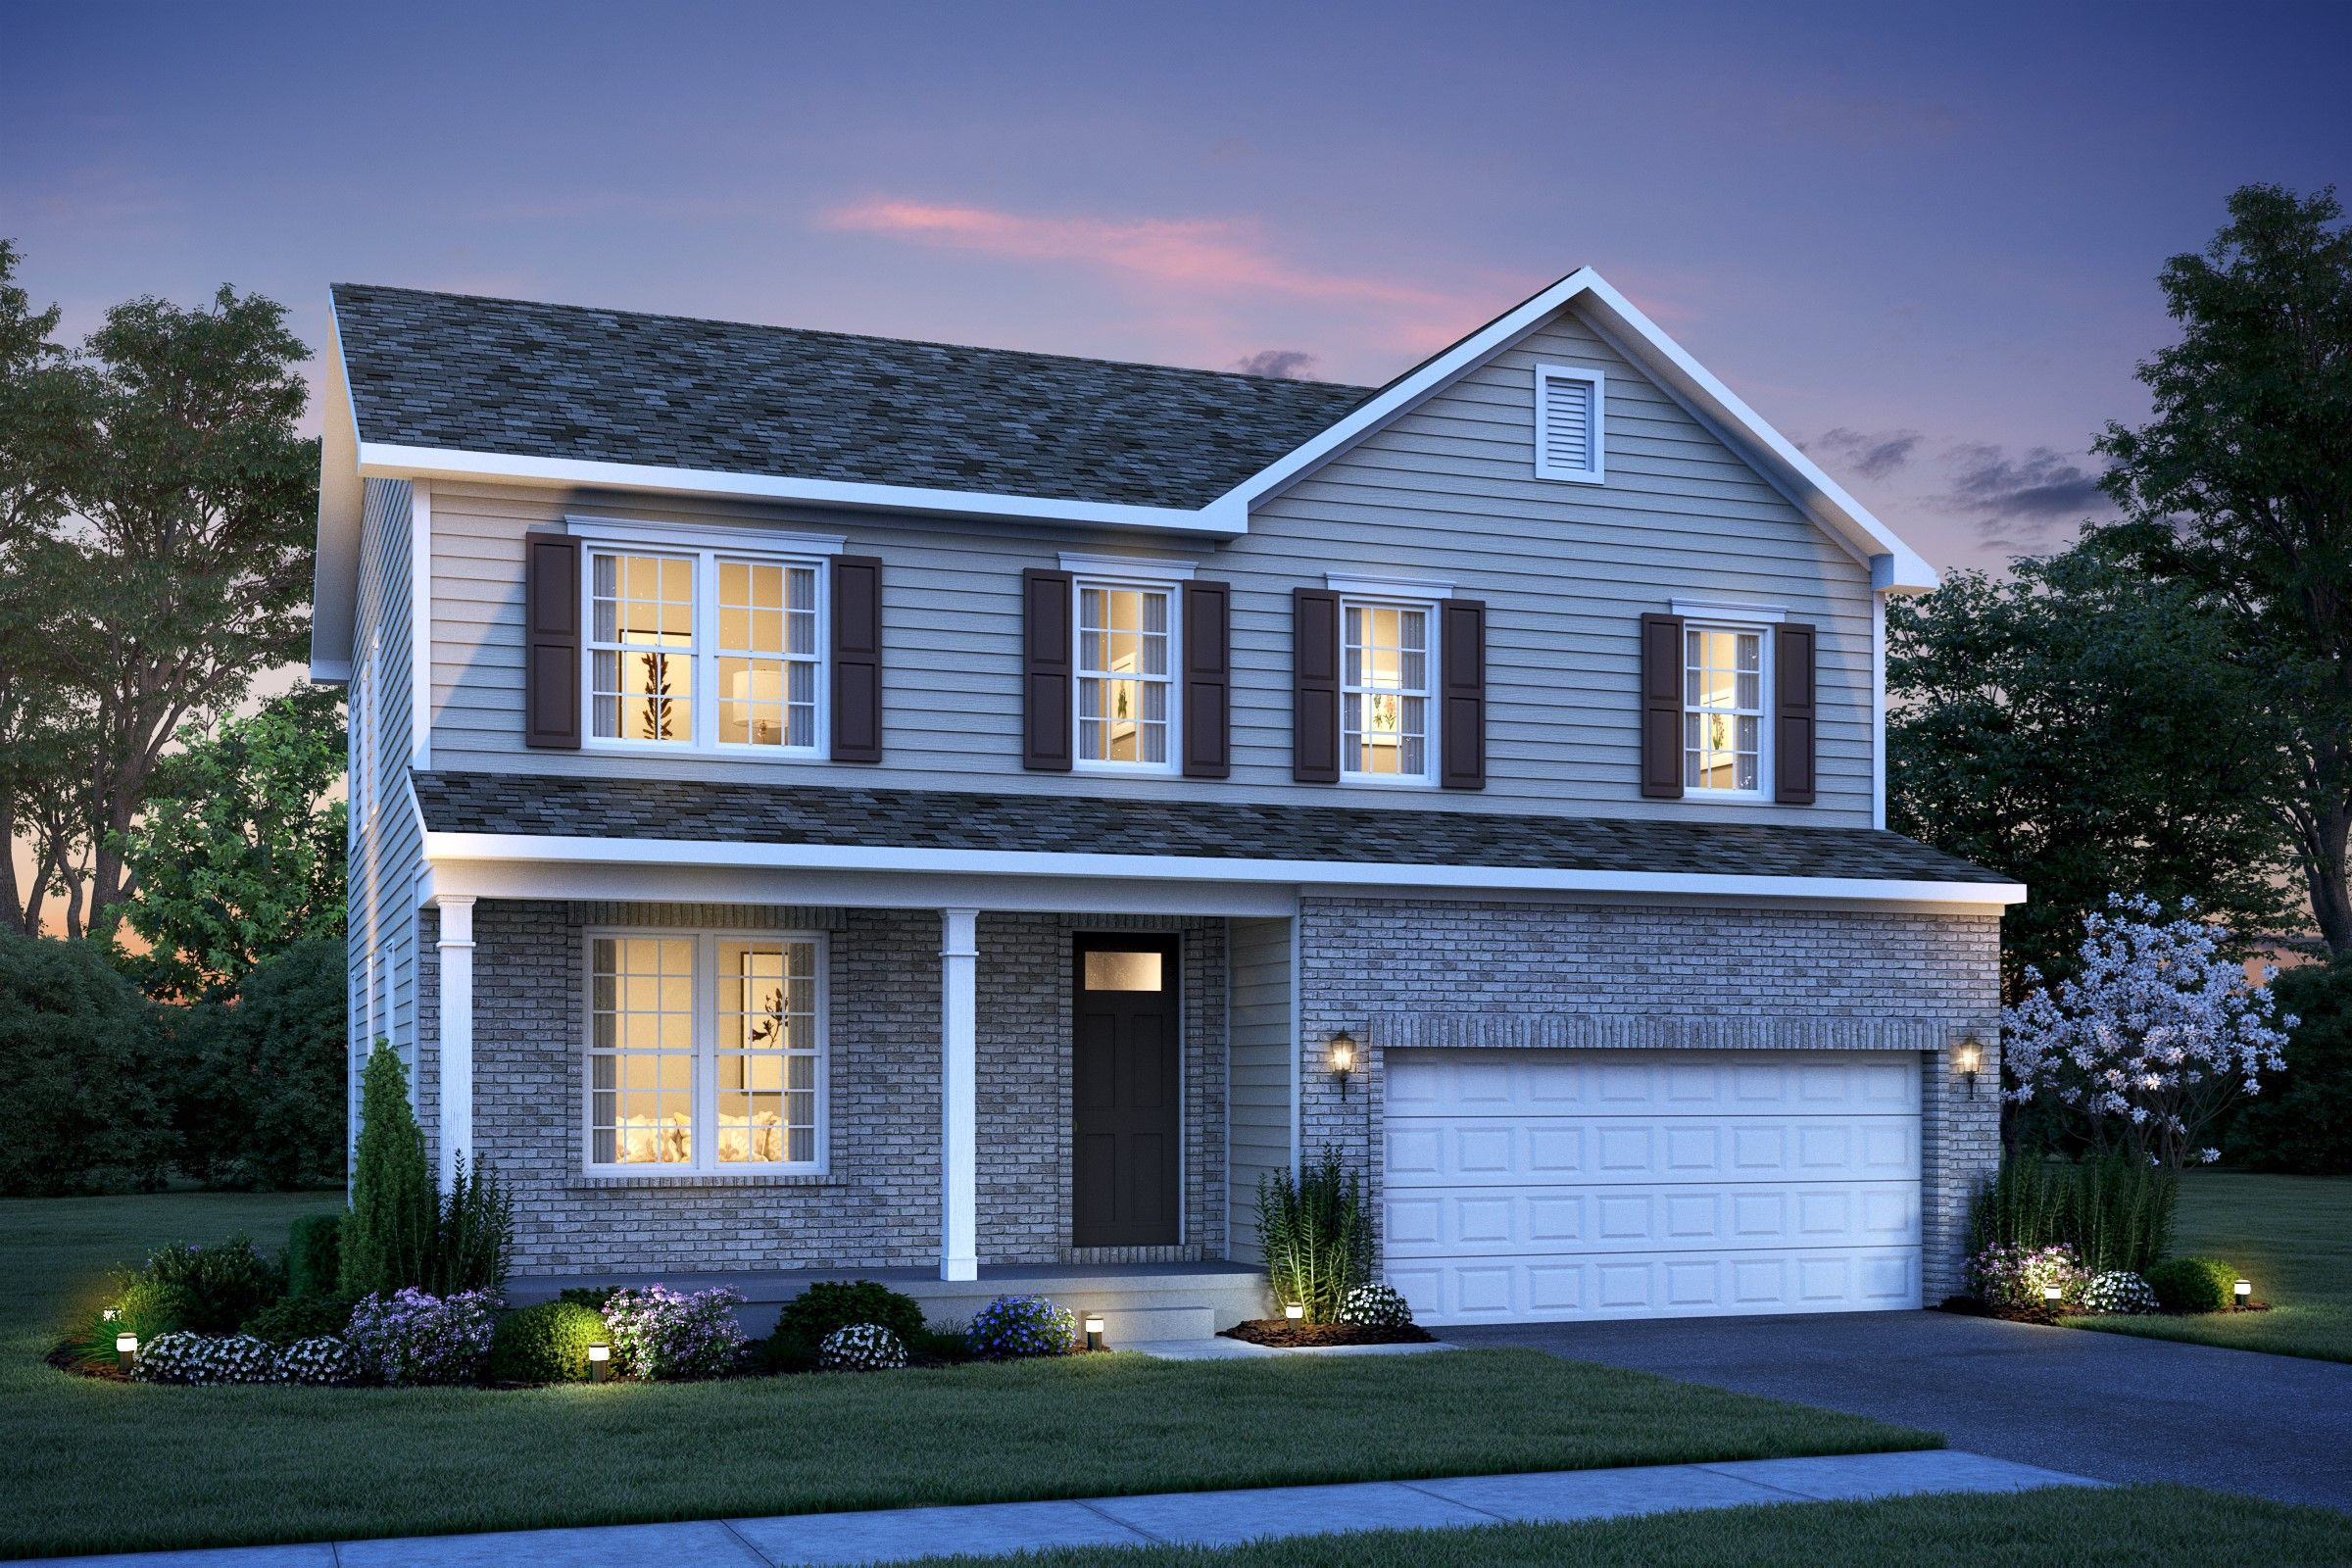 Single Family for Active at Meadow Brook At Hillsborough - Hanover Passe Court Hillsborough, New Jersey 08844 United States